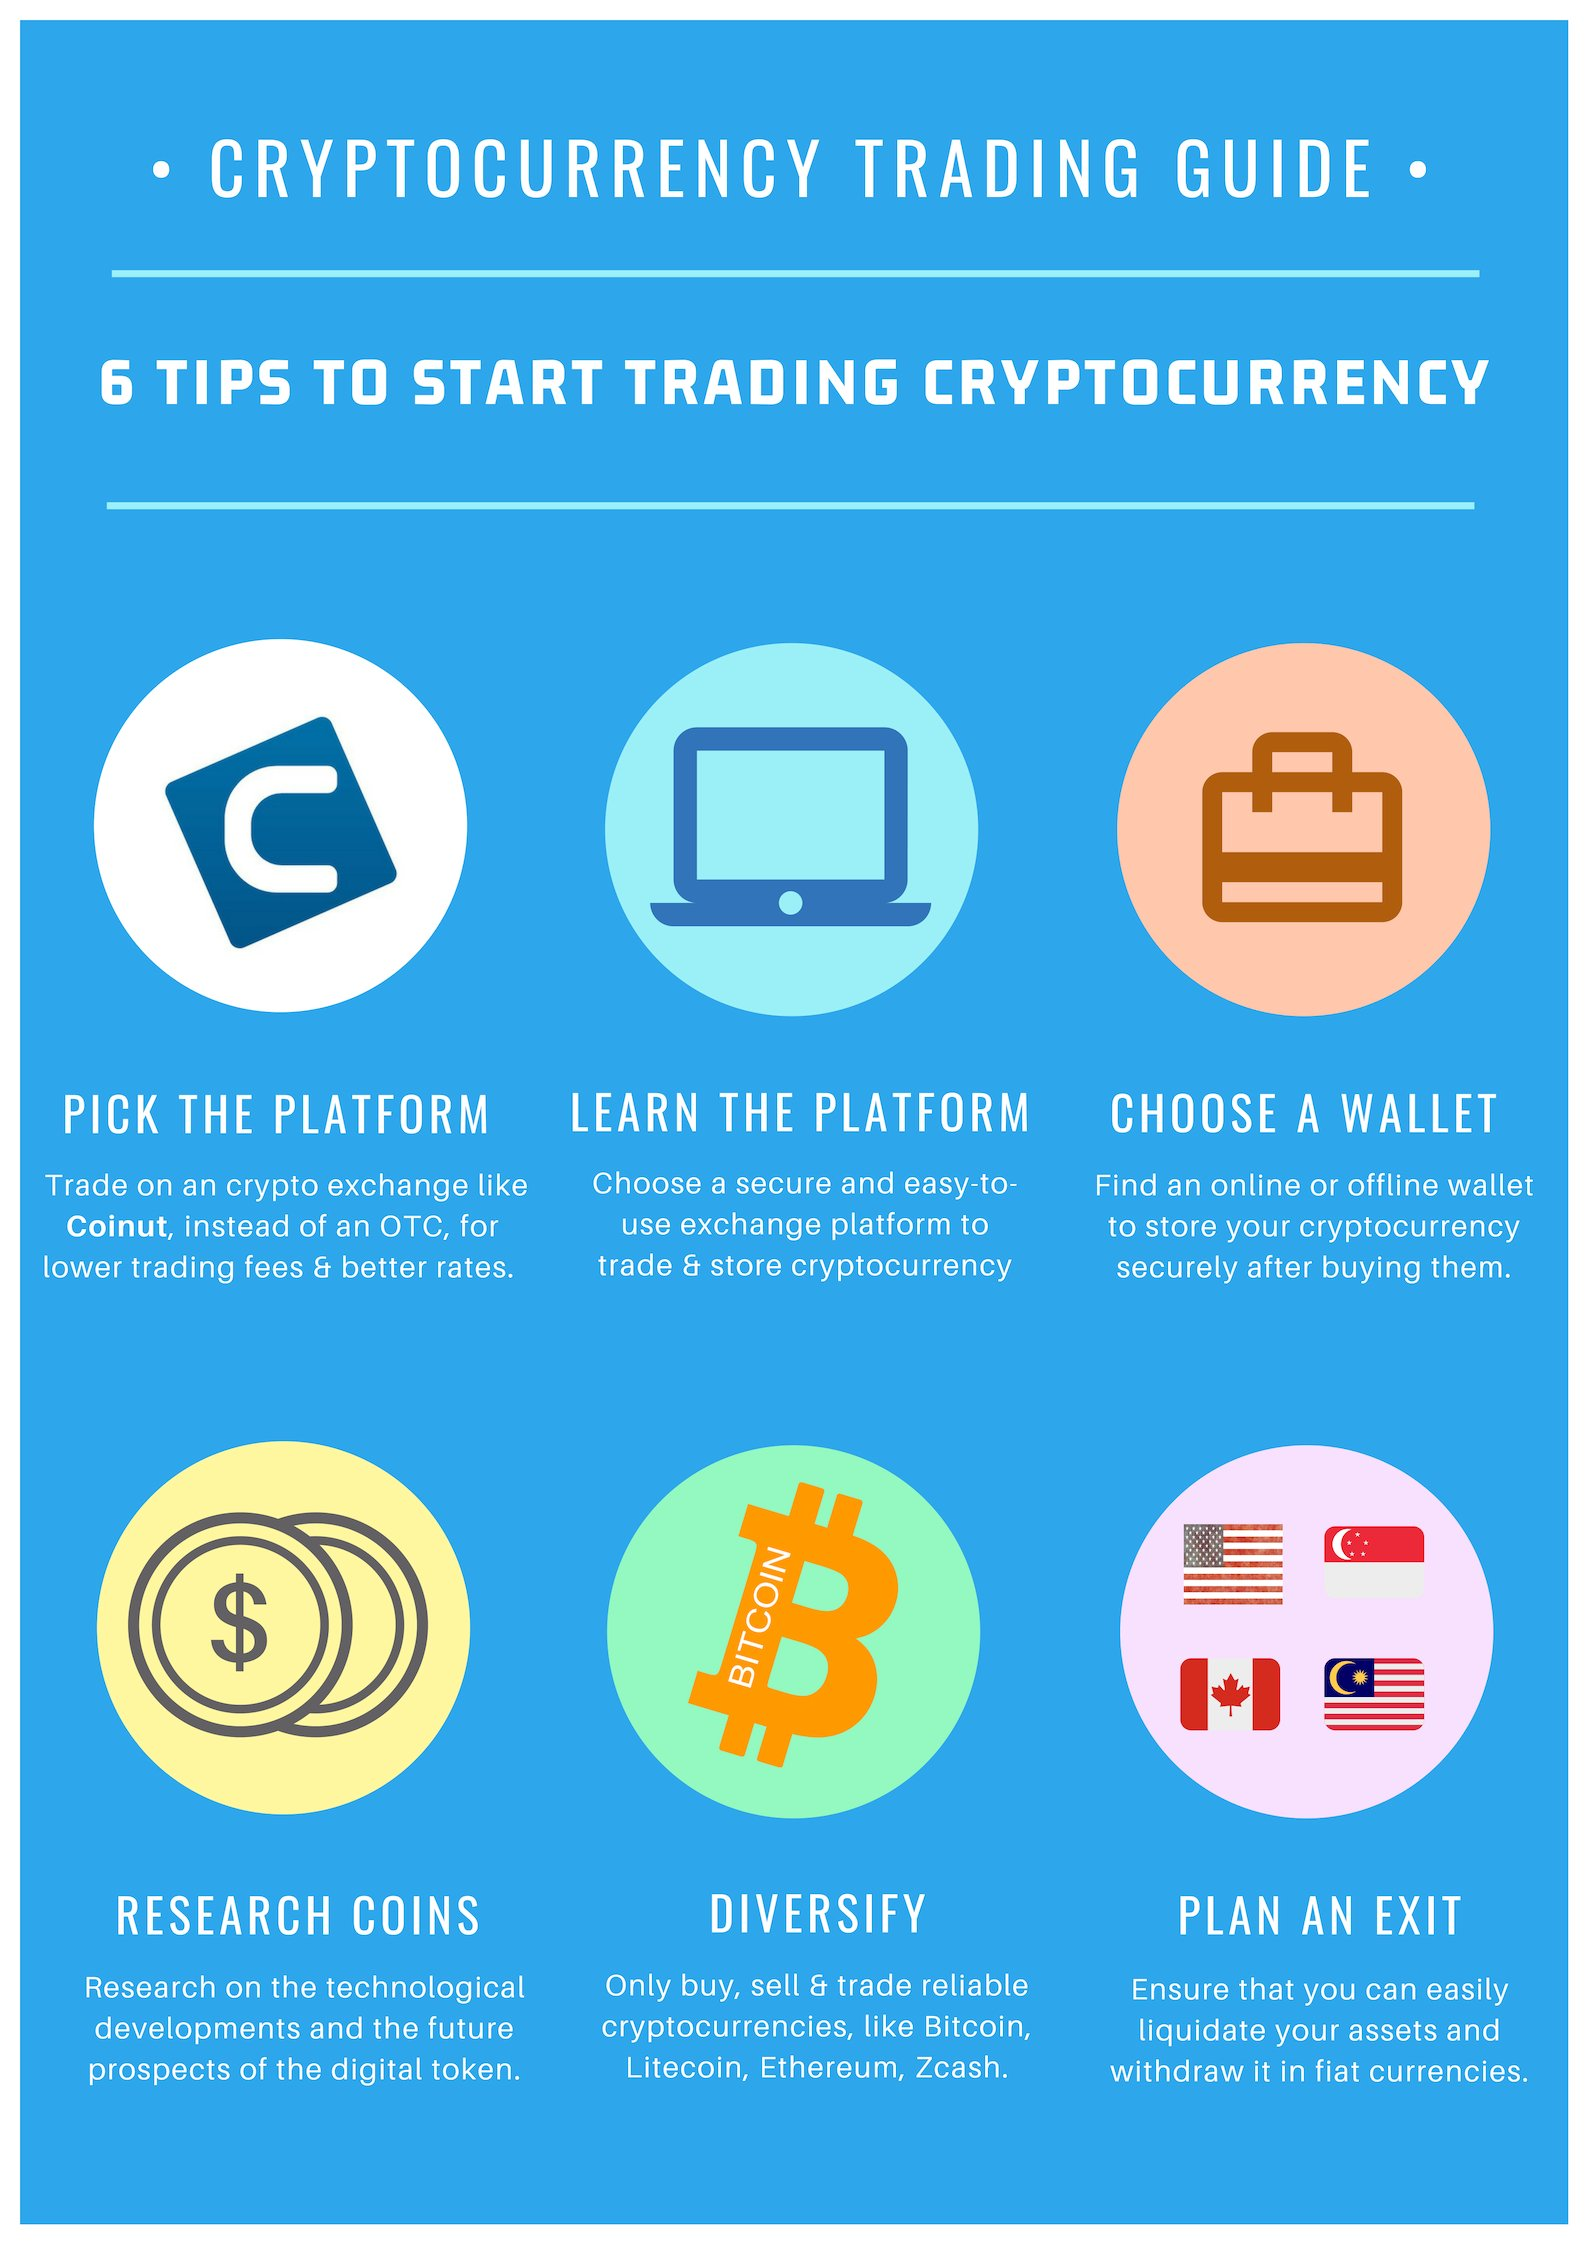 Trading-Guide-2---6-tips-trading-cryptocurrency-1